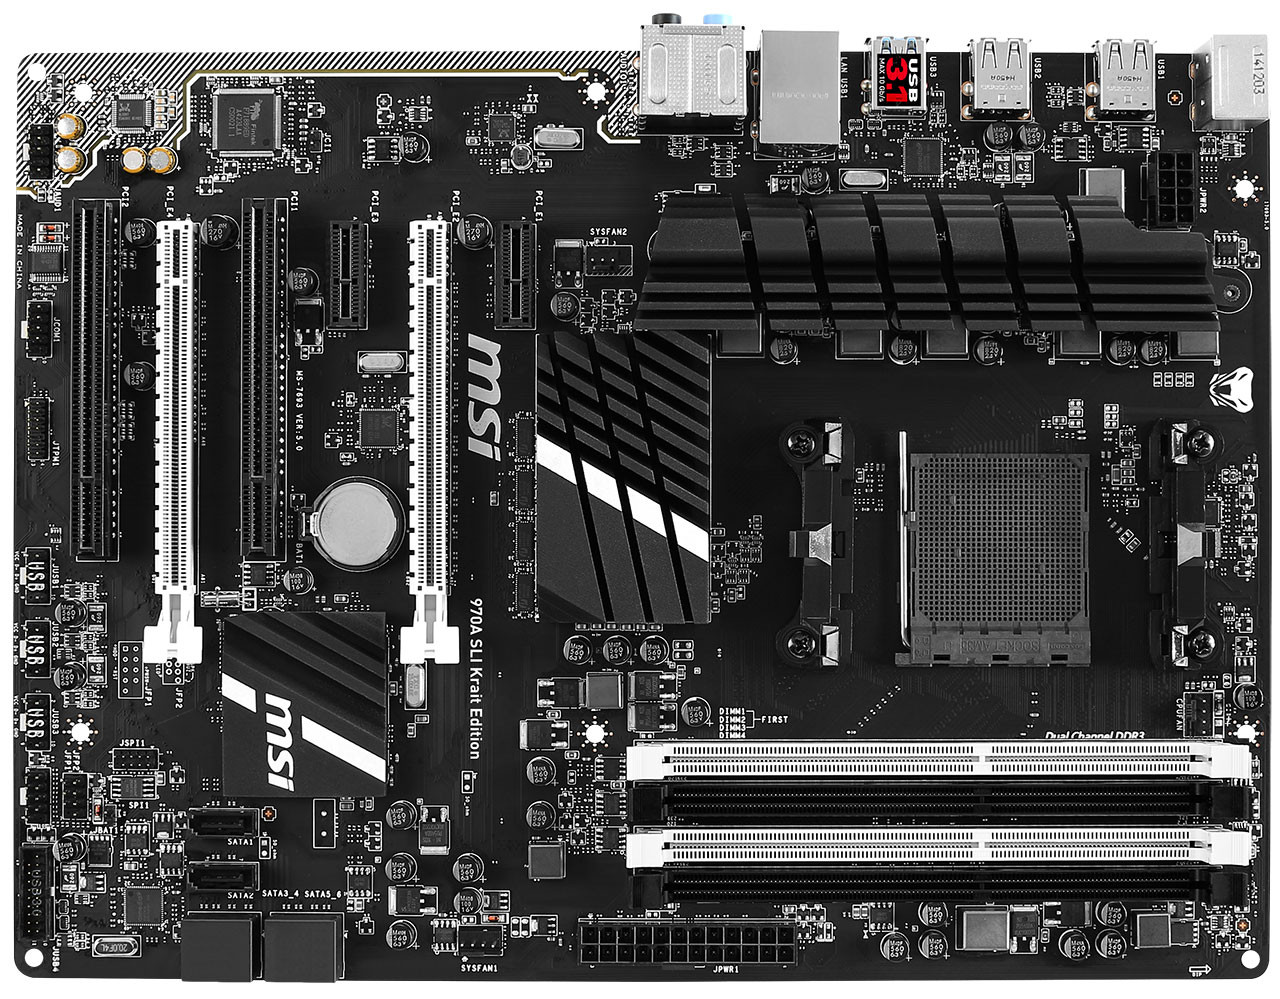 Best Mobo For Sli: MSI Announces First AMD Motherboard With USB 3.1, The 970A